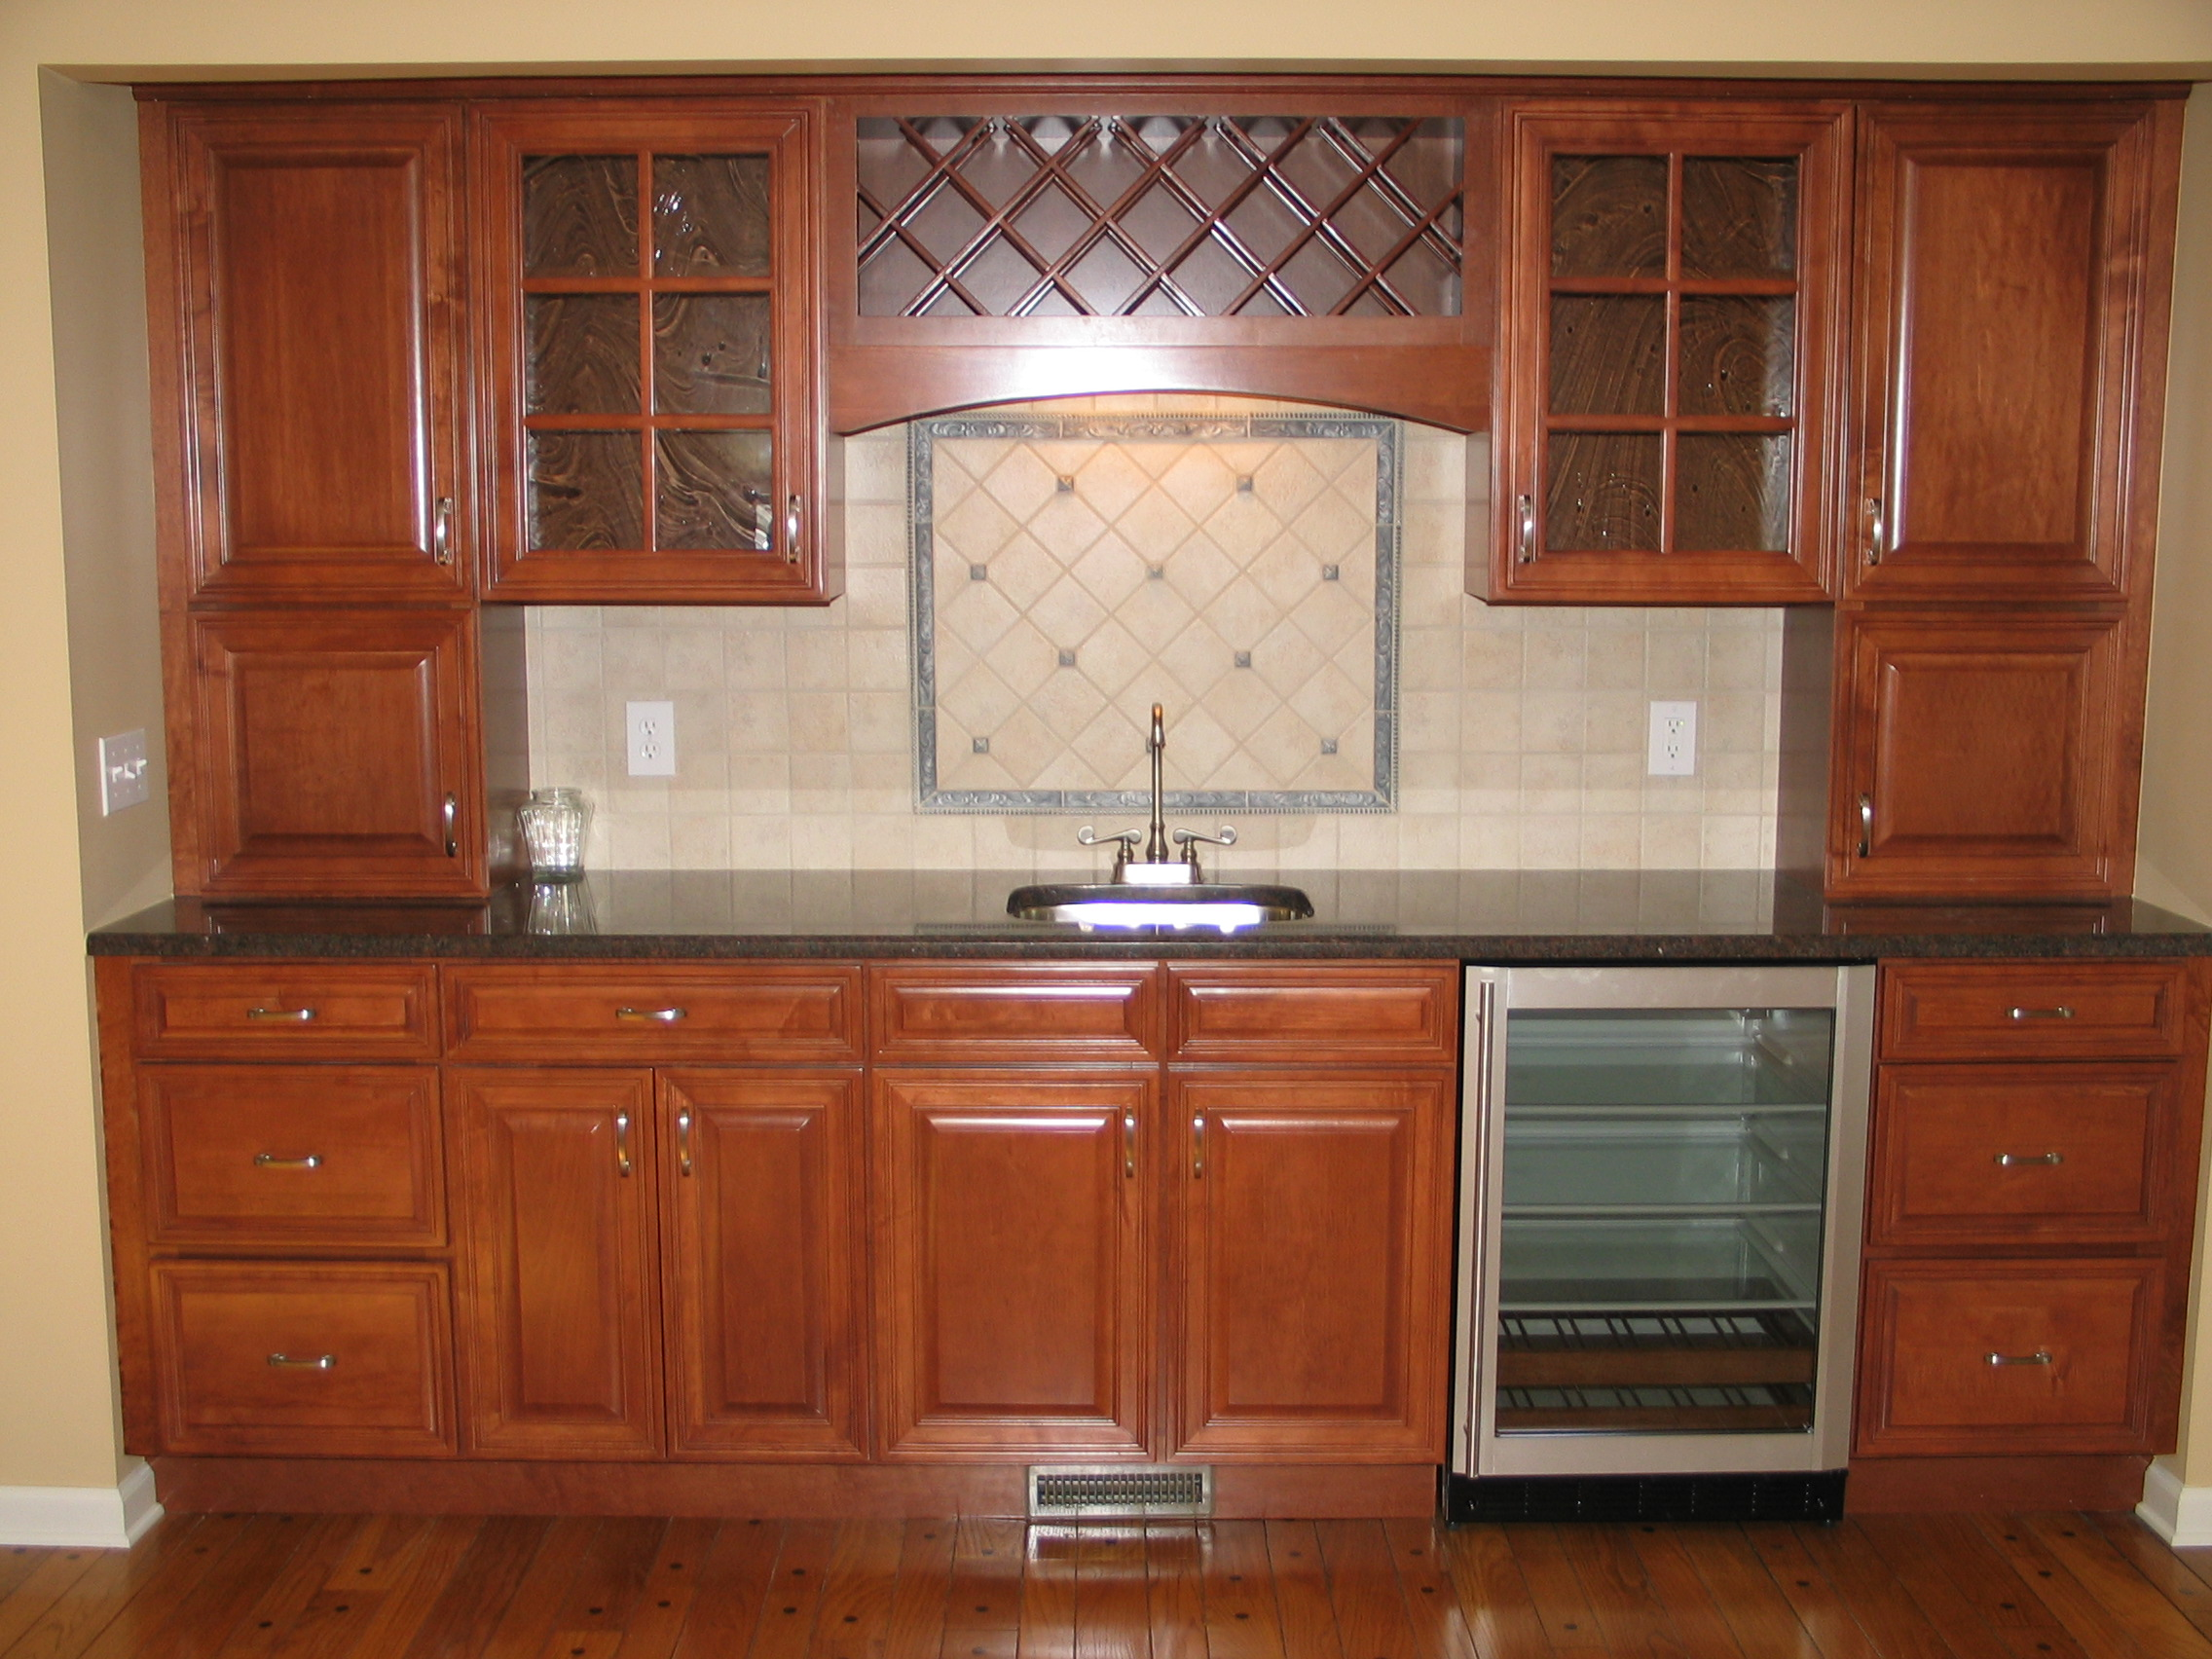 Remodeling Or Renovating? We Are Here To Help!